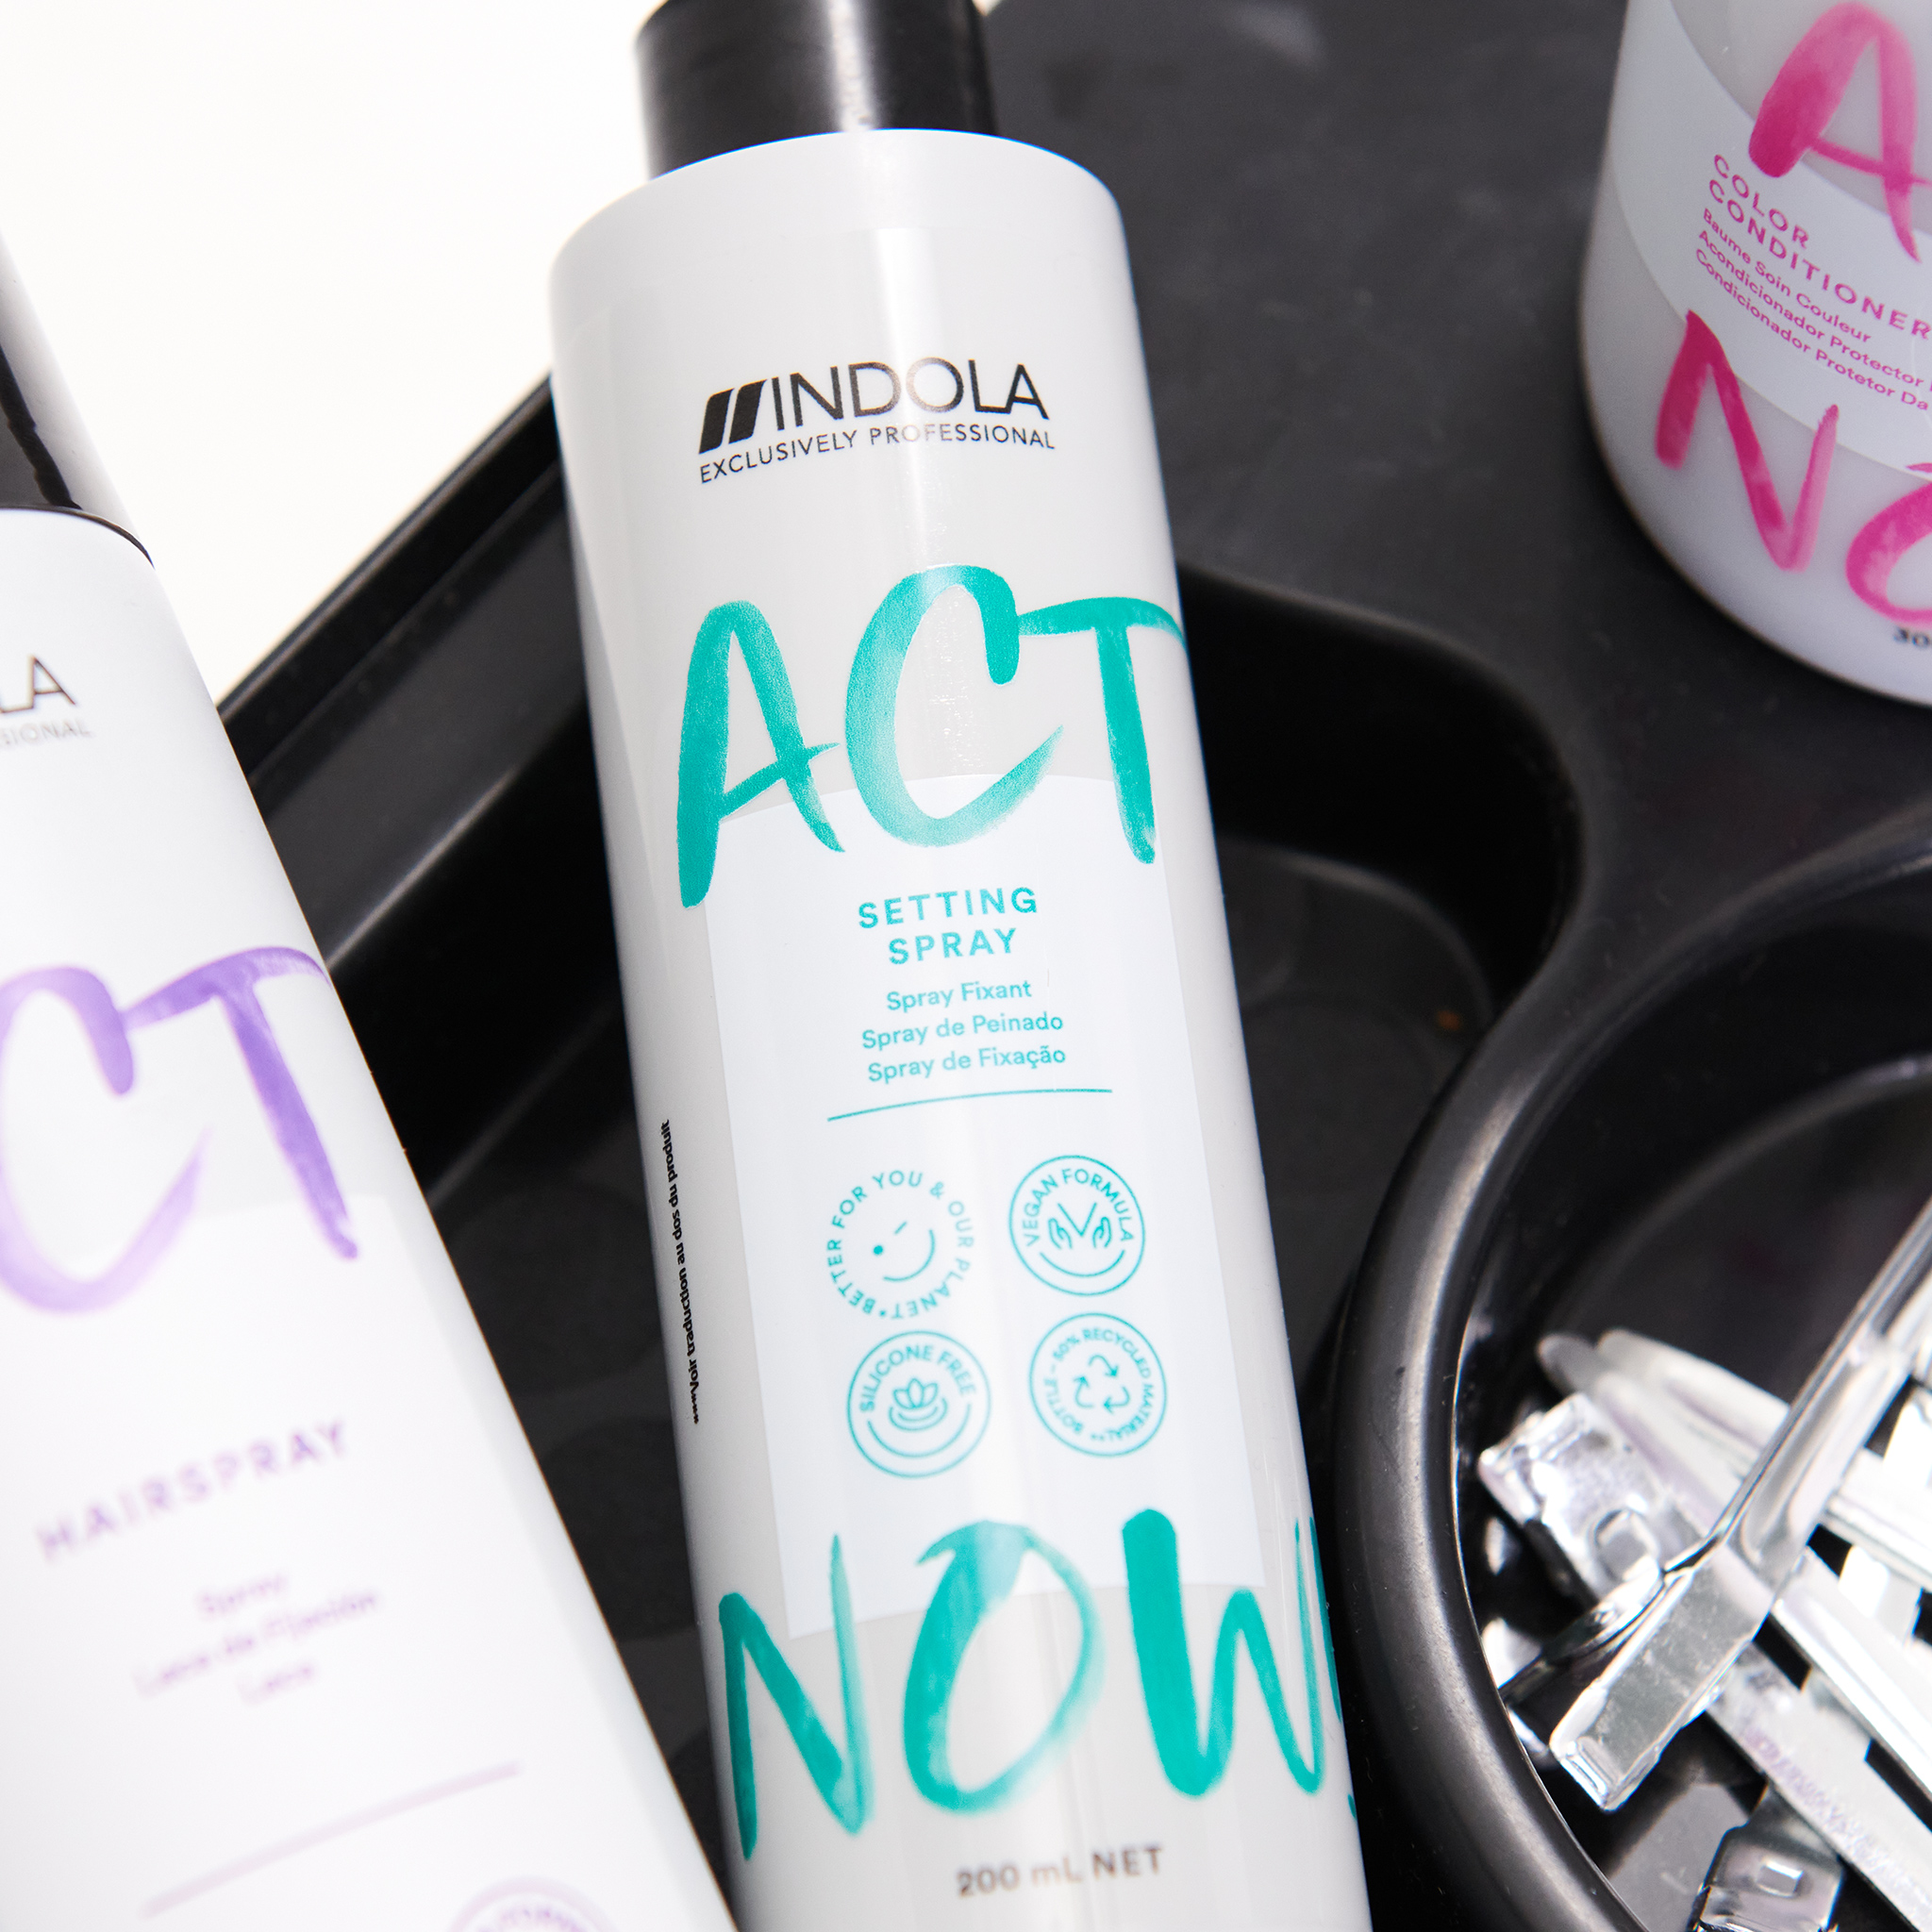 actnow_settingspray_thumbnail02